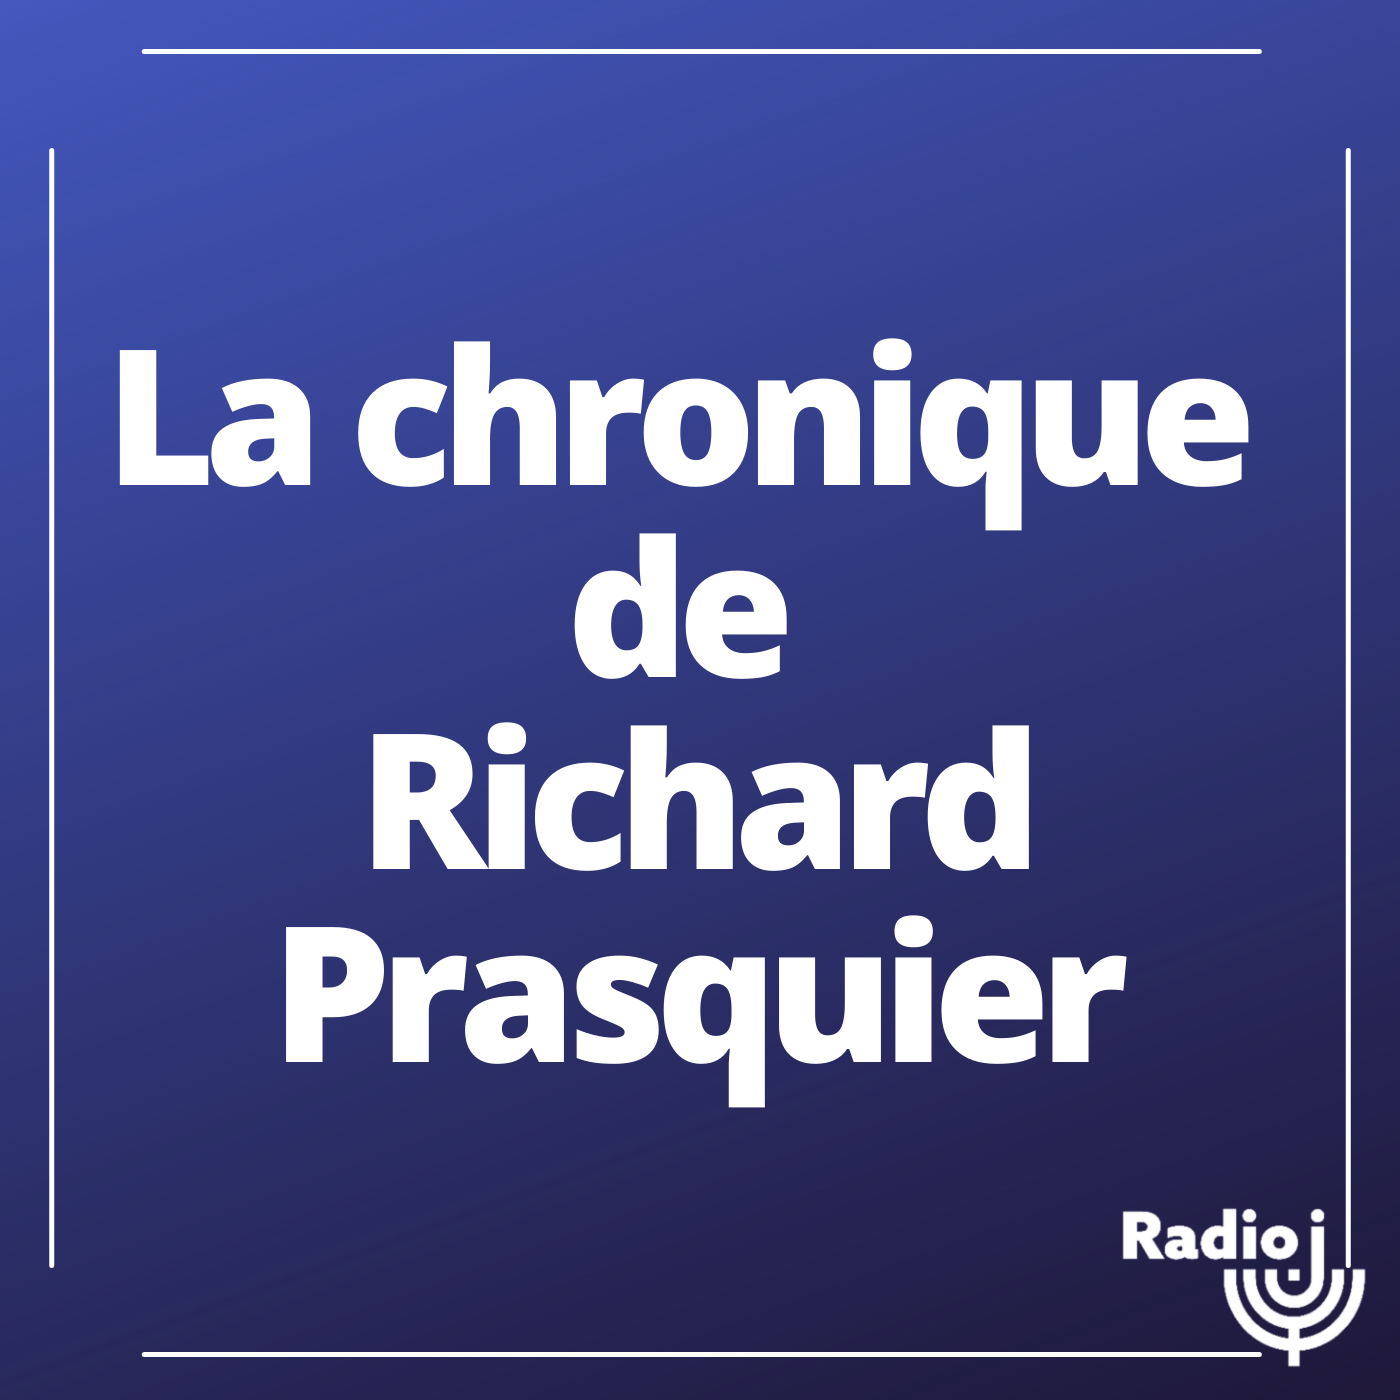 La chronique de Richard Prasquier